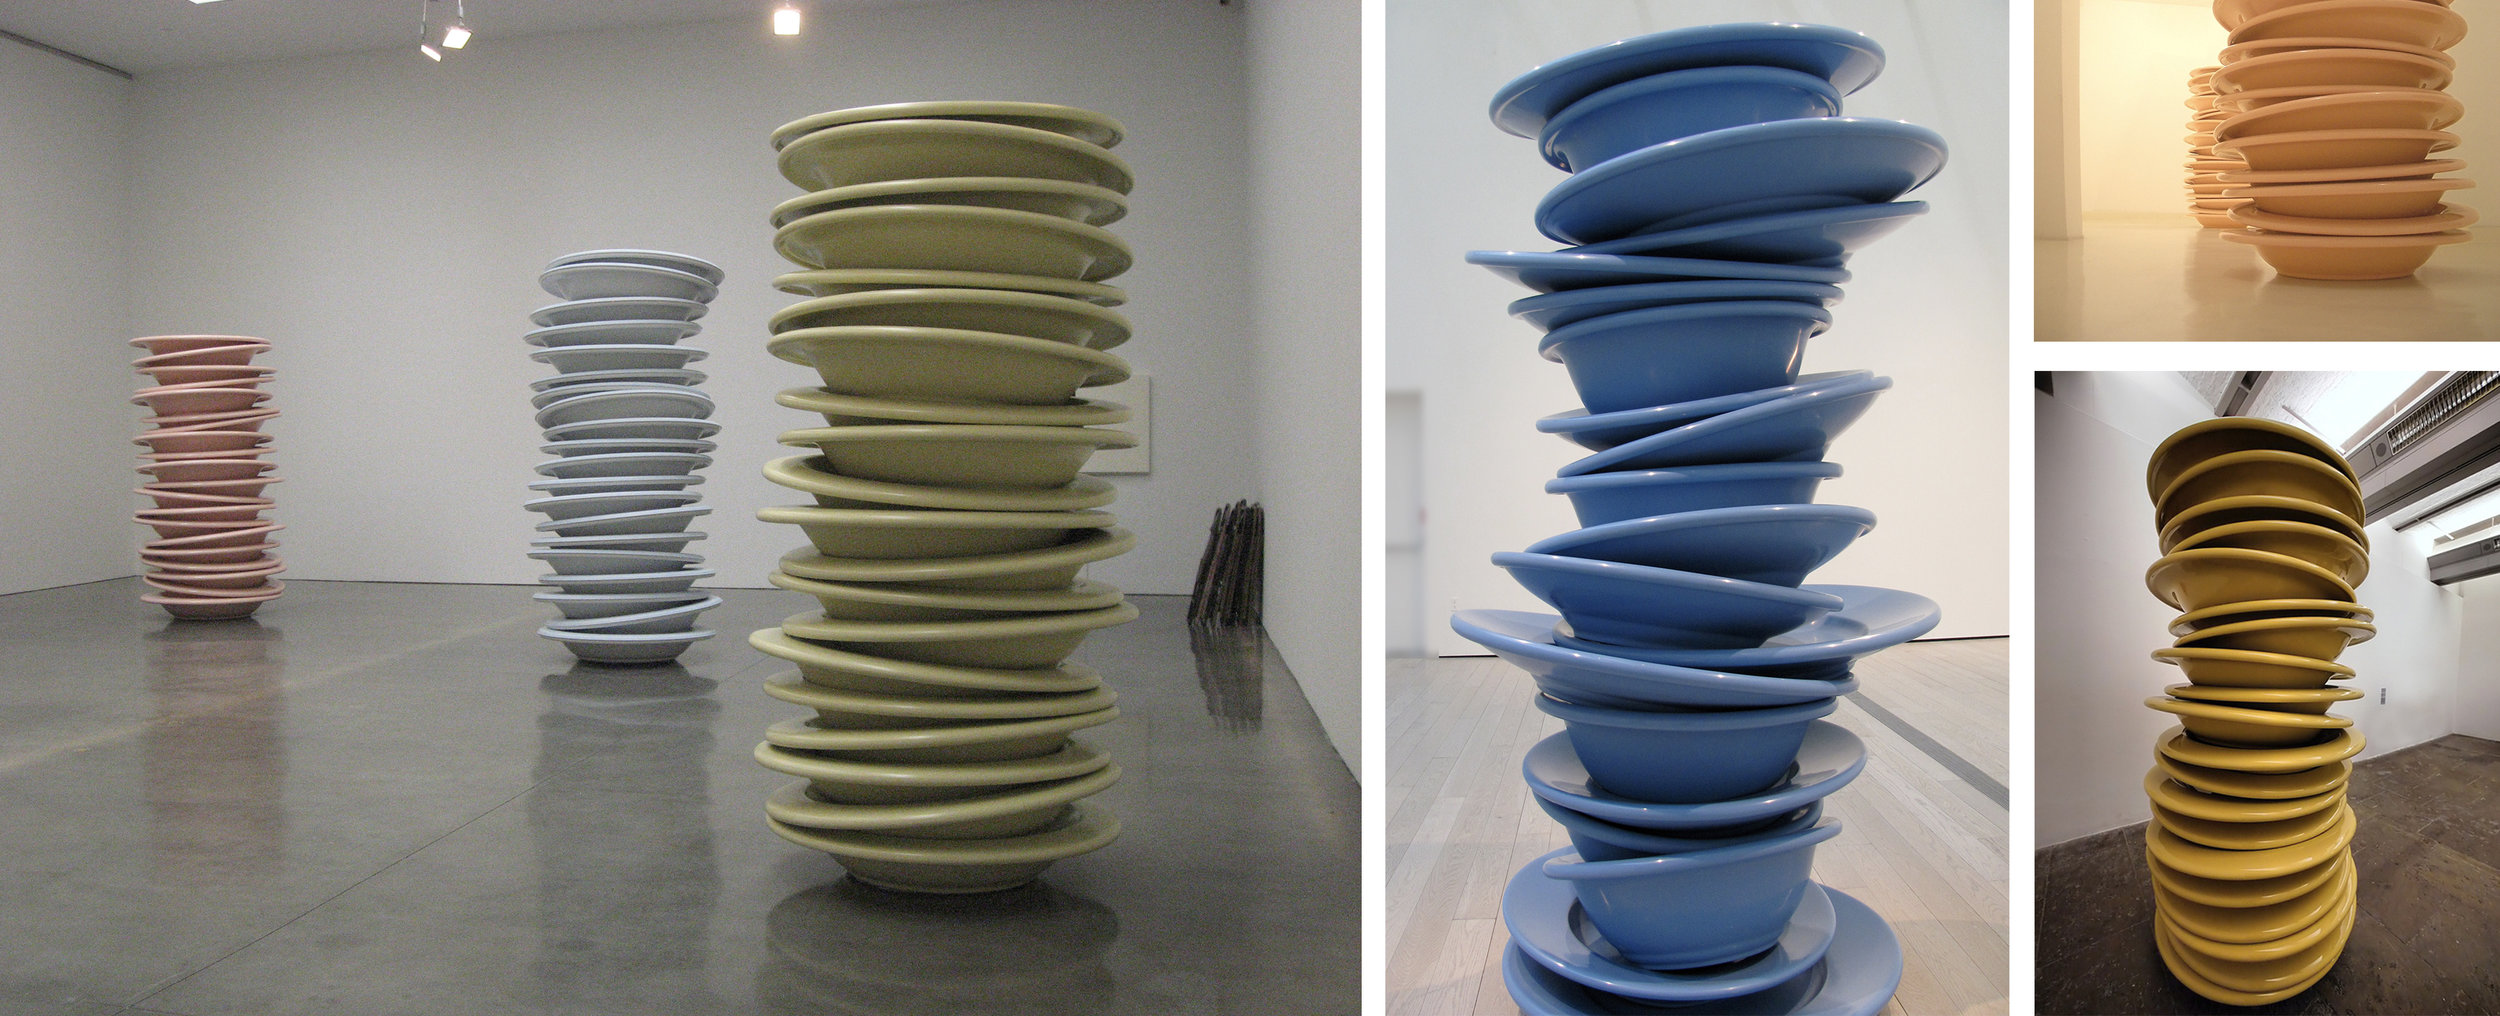 Robert Therrien  Stacked Plates 2004  94 x 54 x 54 inches  Plastic      View More Robert Therrien